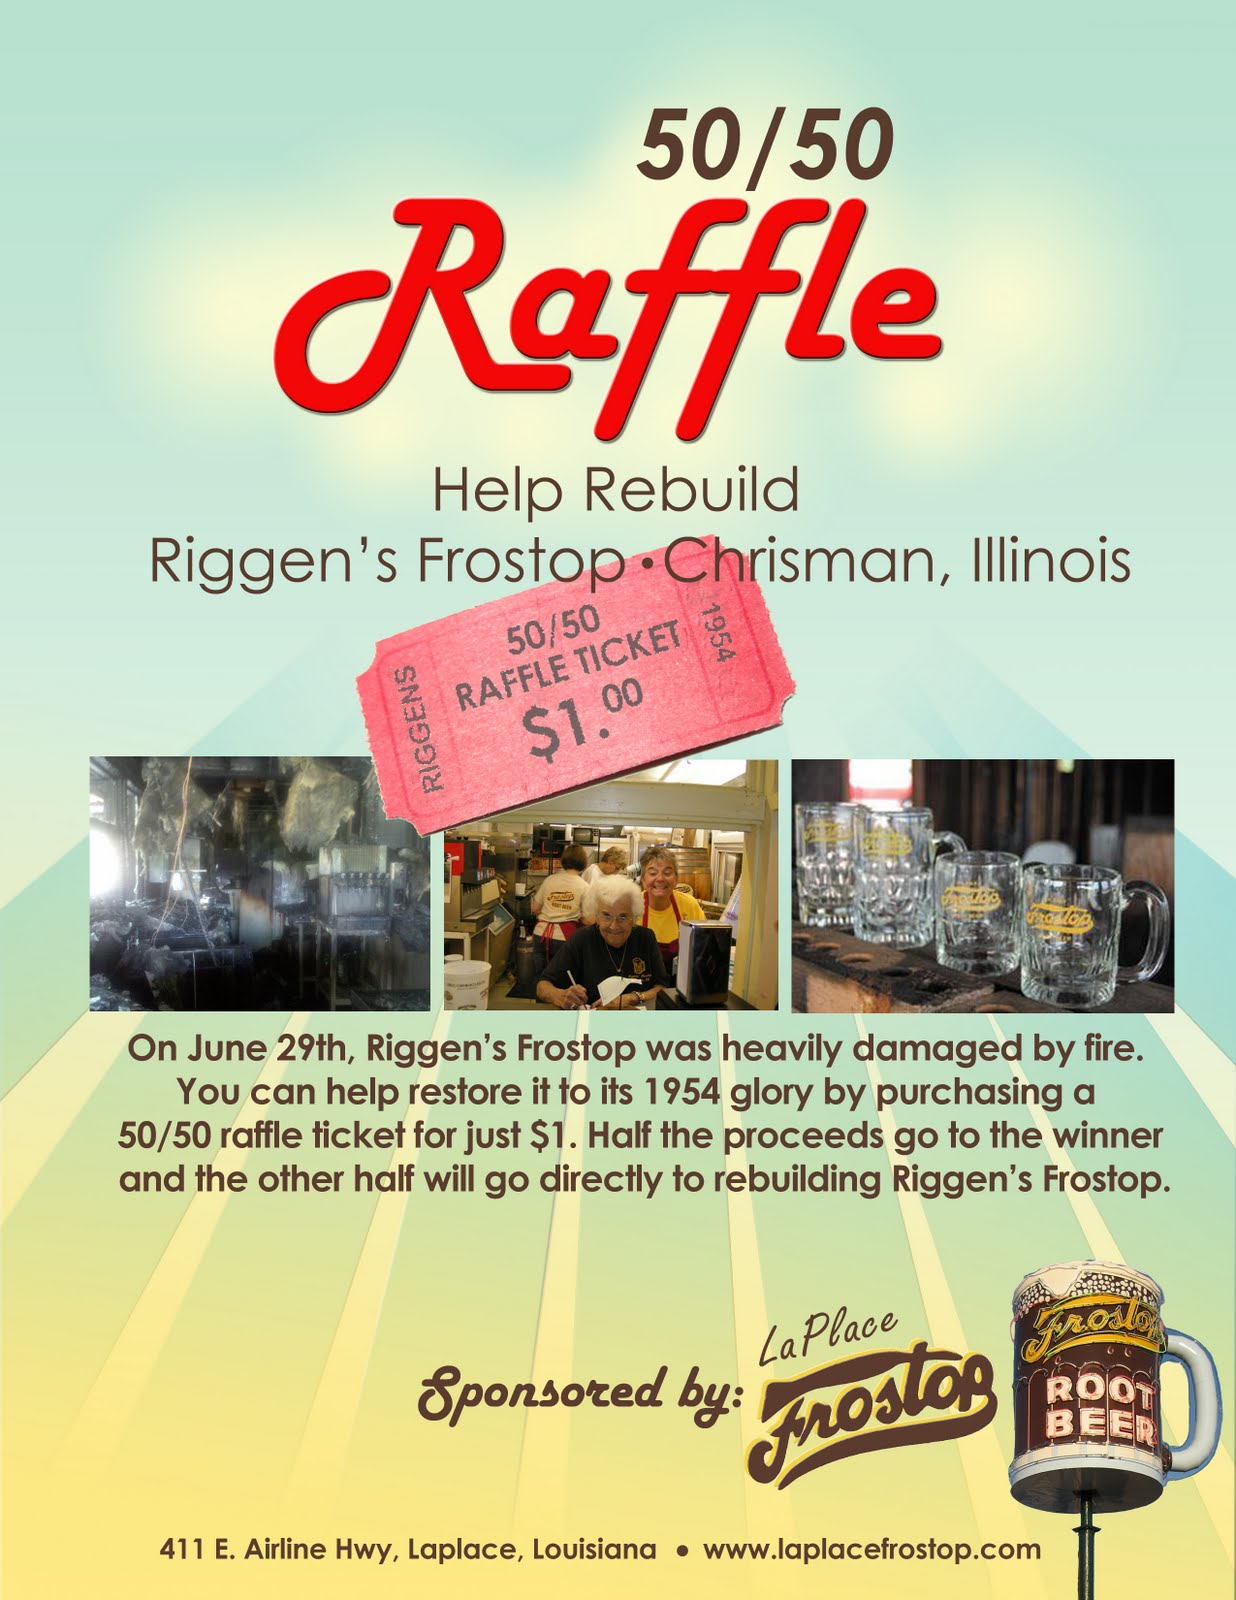 raffle drawing flyer template raffle drawing flyer template dimension n tk